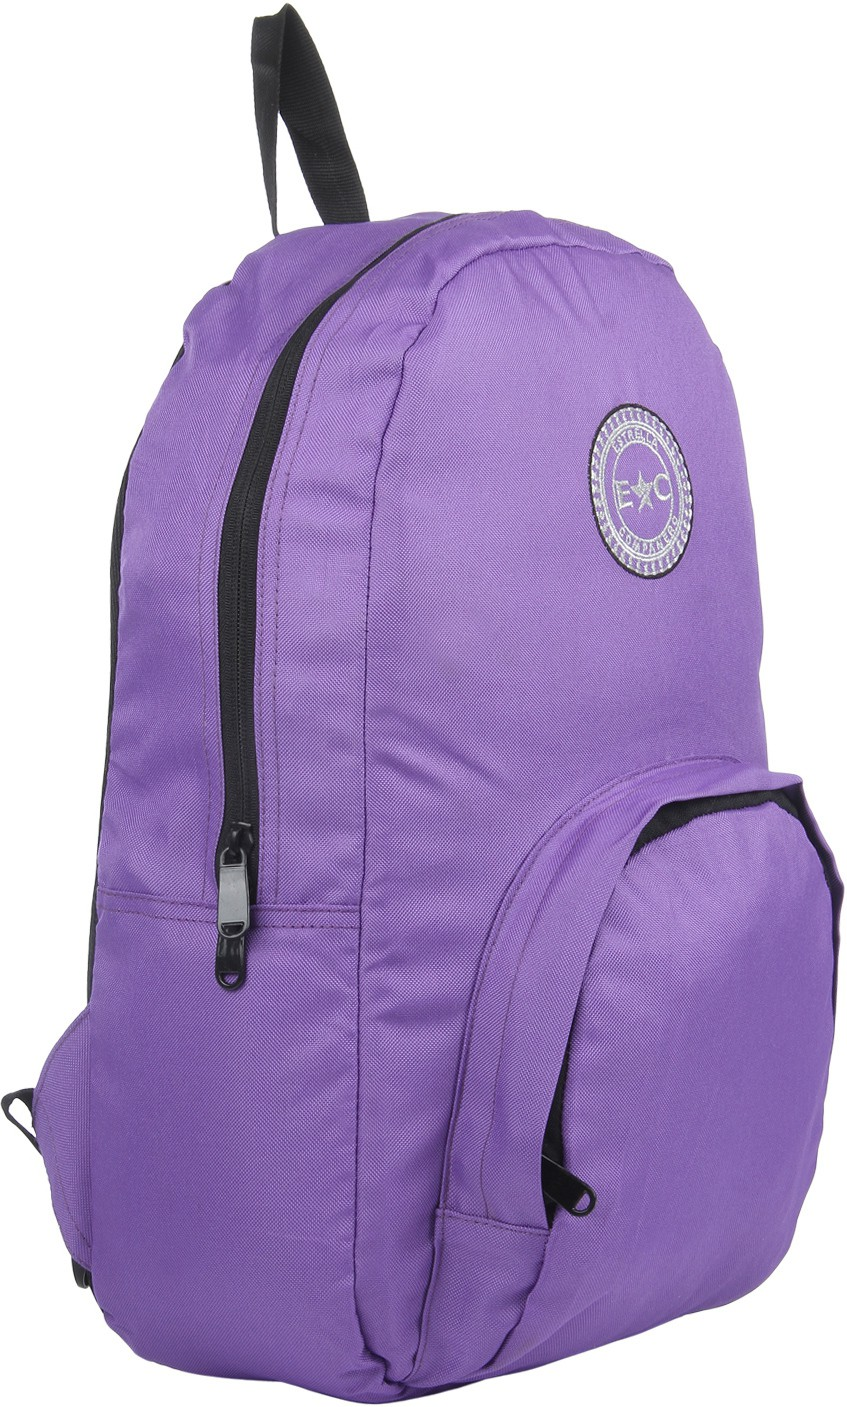 Estrell Companer 15.6 inch Laptop Backpack(Purple)